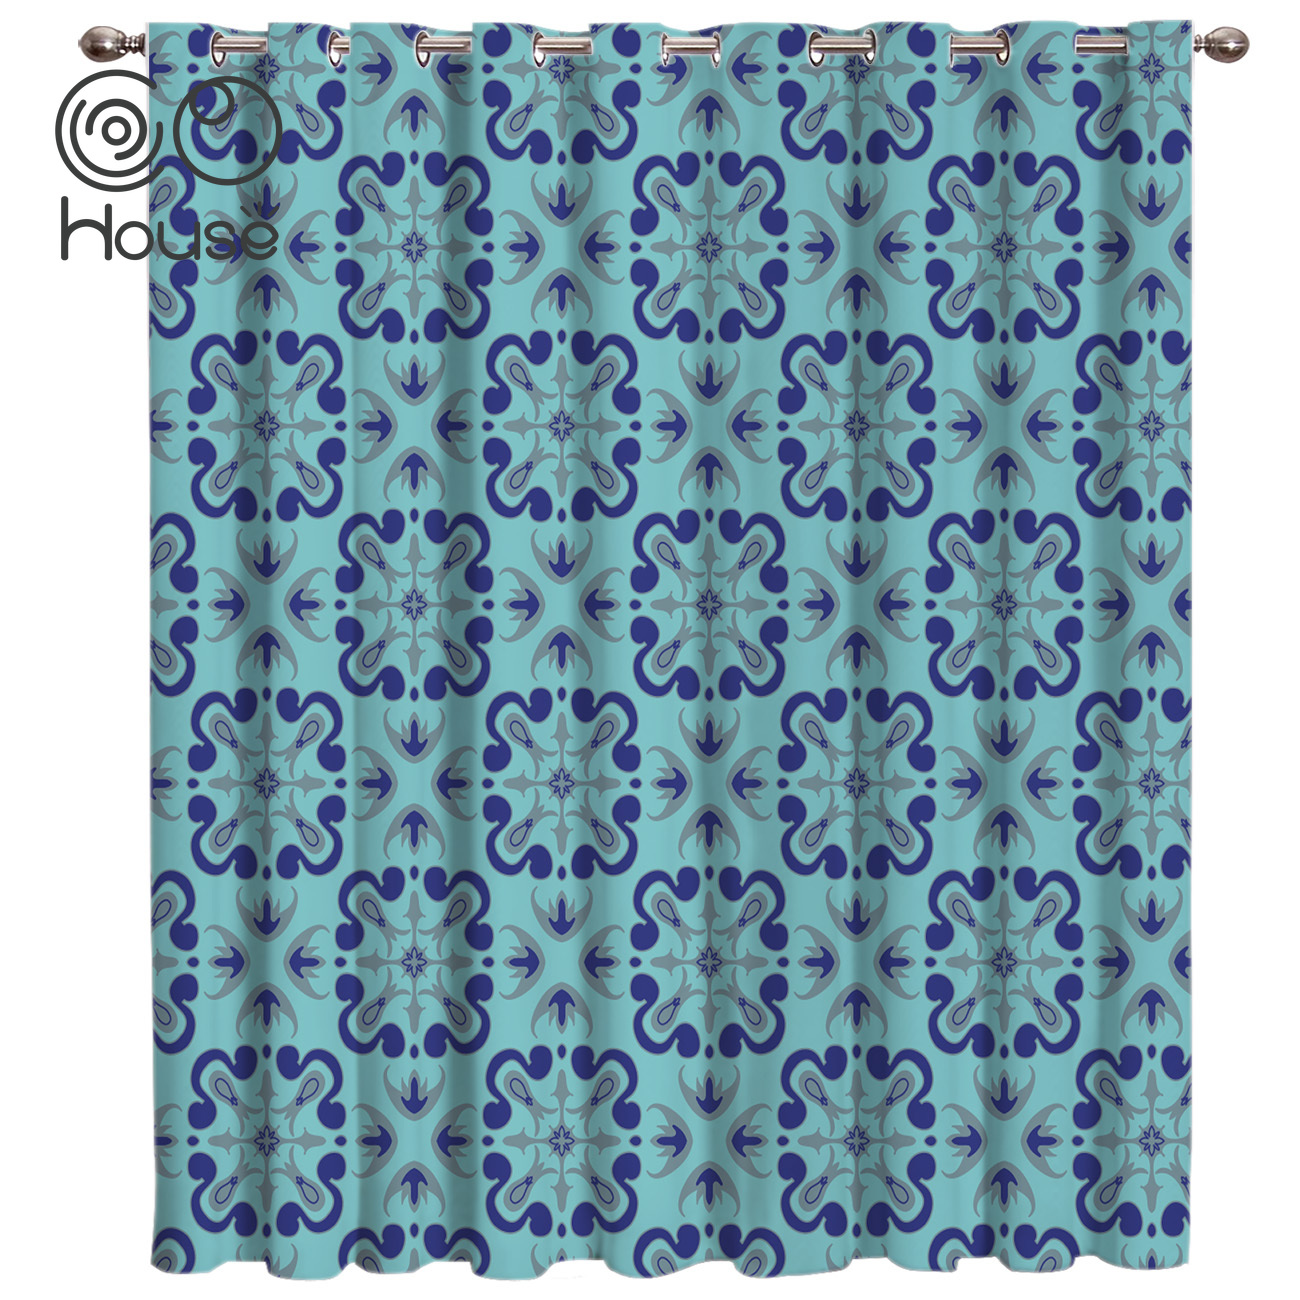 COCOHouse Bohemia Retro Ethnic Blue Room Curtains Large Window Window Blinds Bathroom Swag Curtain Panels With Grommets Window